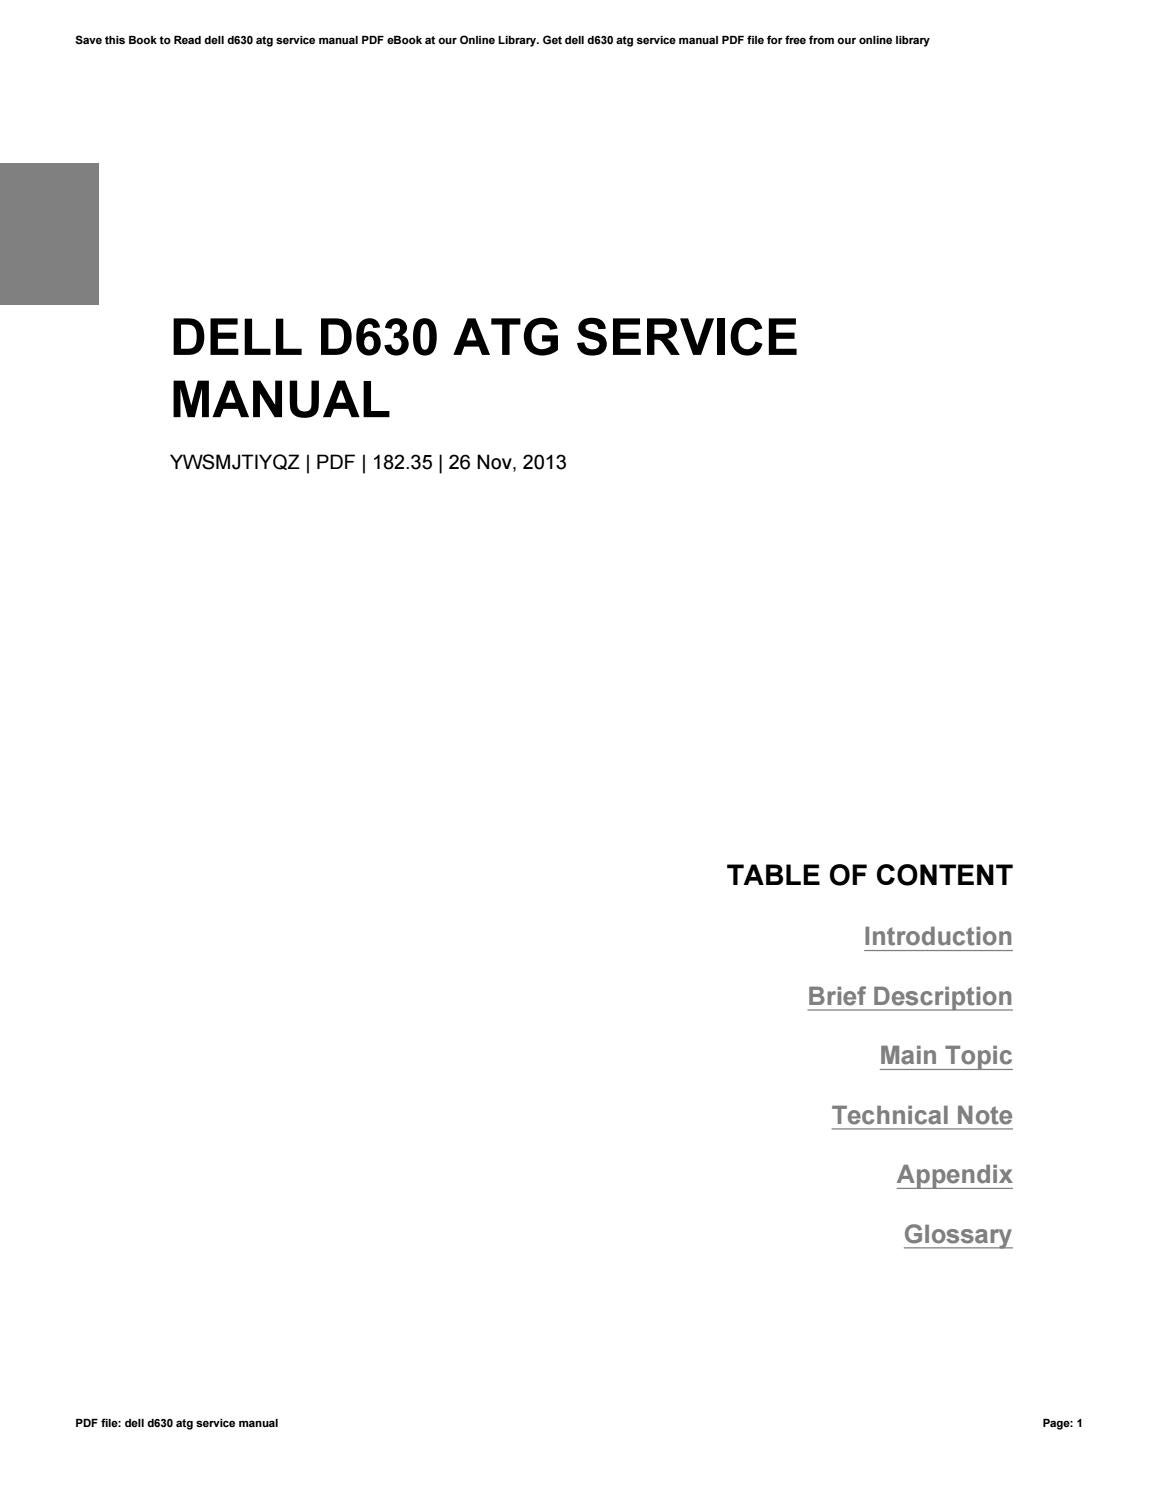 ... Array - dell m1210 manual ebook rh dell m1210 manual ebook nitrorocks de